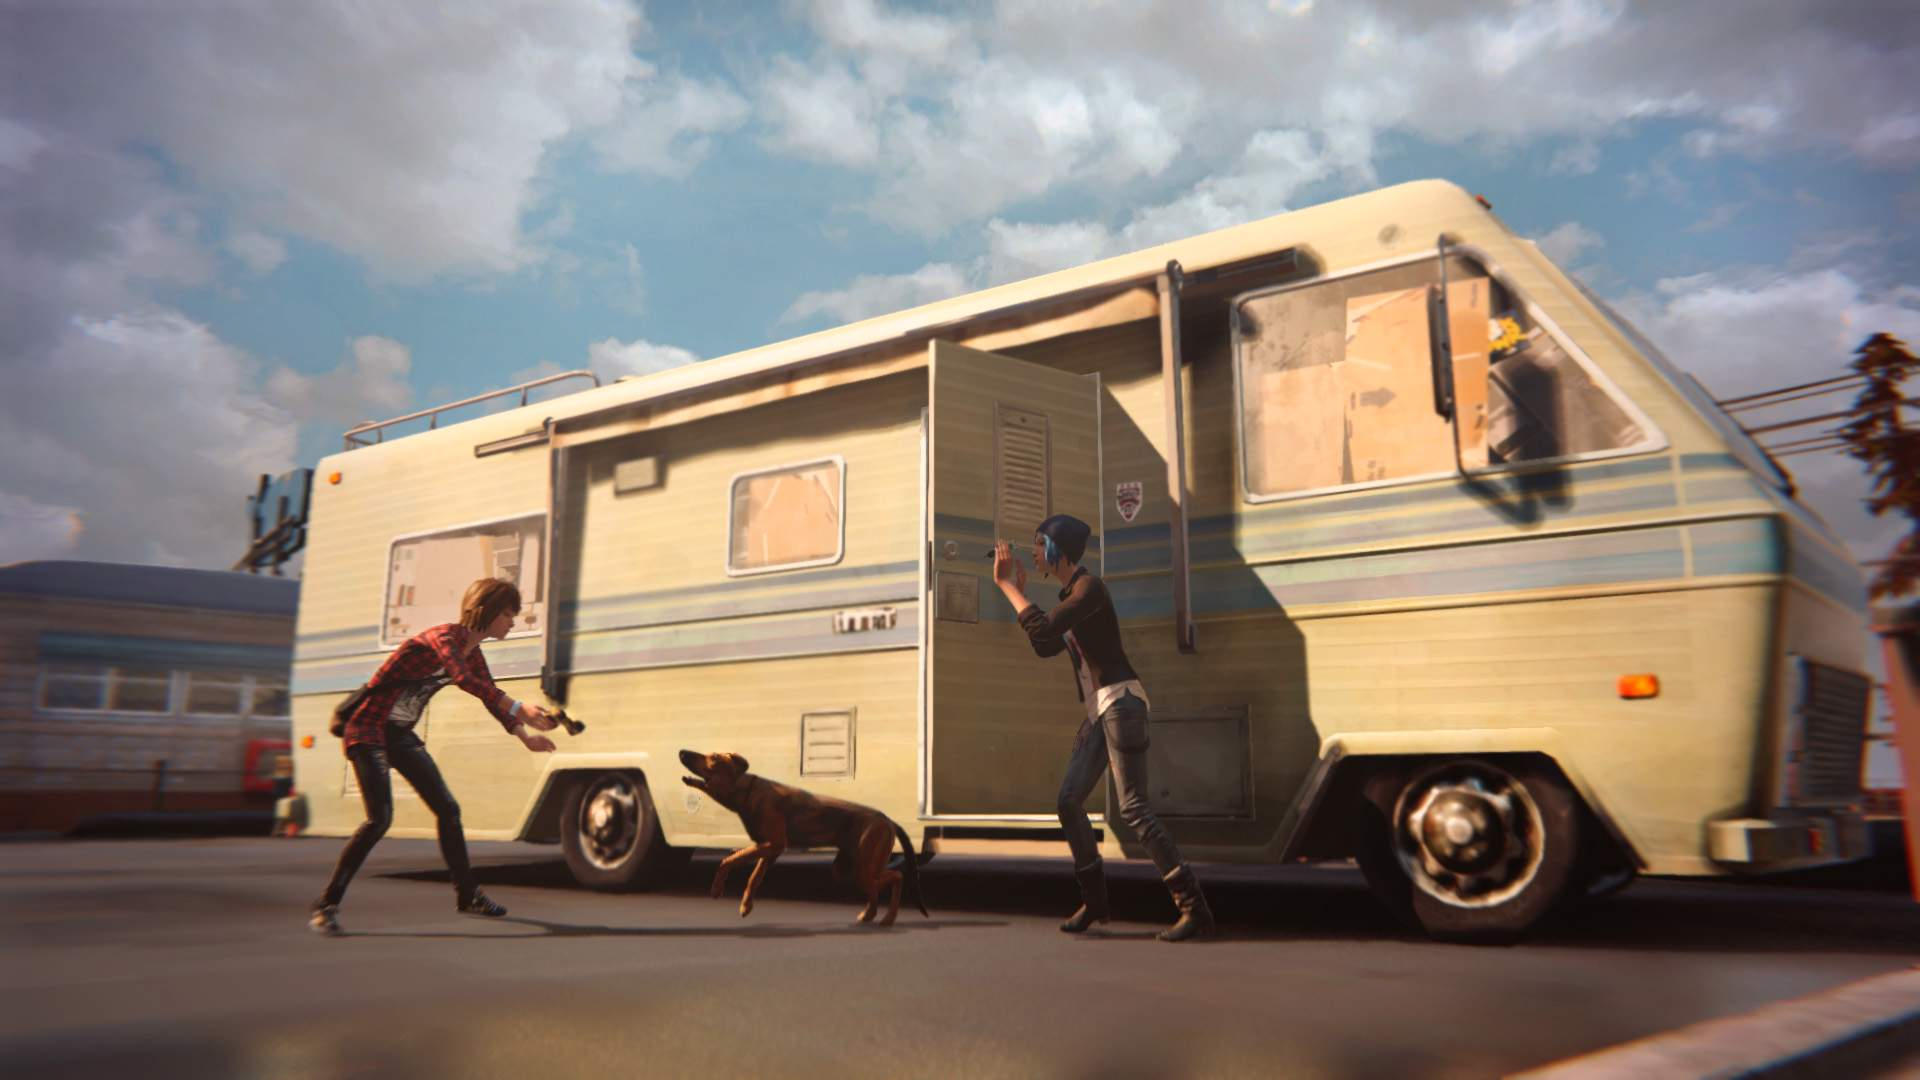 In front of Frank's RV, Max and Chloe attempt to calm down Frank's dog, Pompidou, before it can raise the alarm.